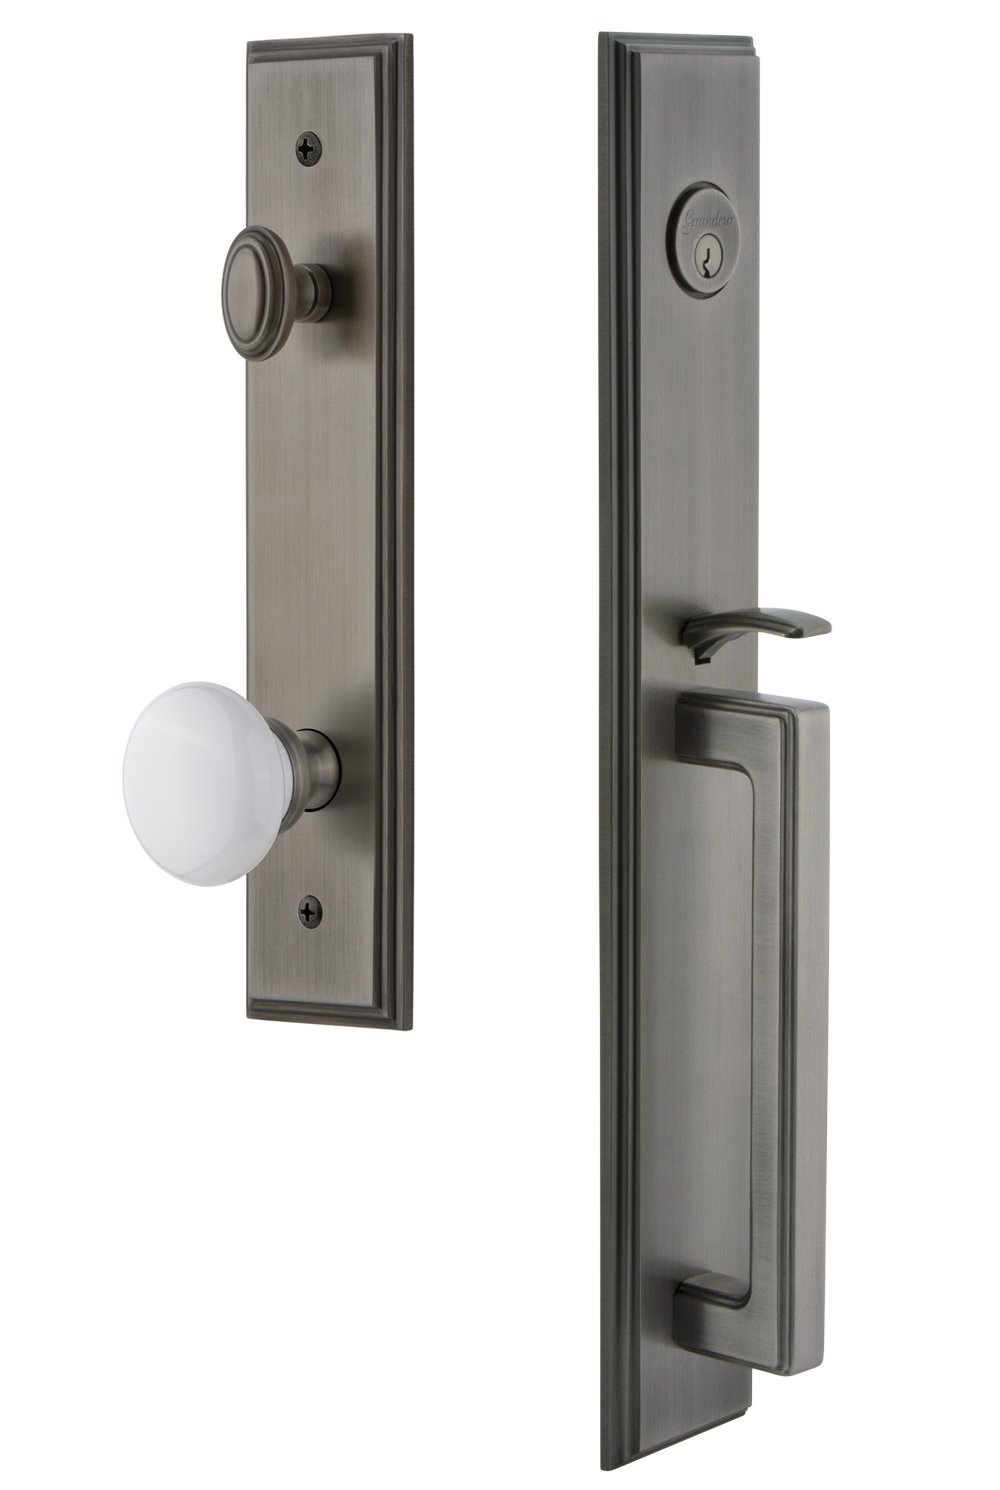 Grandeur 845235 Hardware Carre One-Piece Handleset with D Grip and Hyde Park Knob in Satin Nickel Single Cylinder Lock Backset Size-2.375